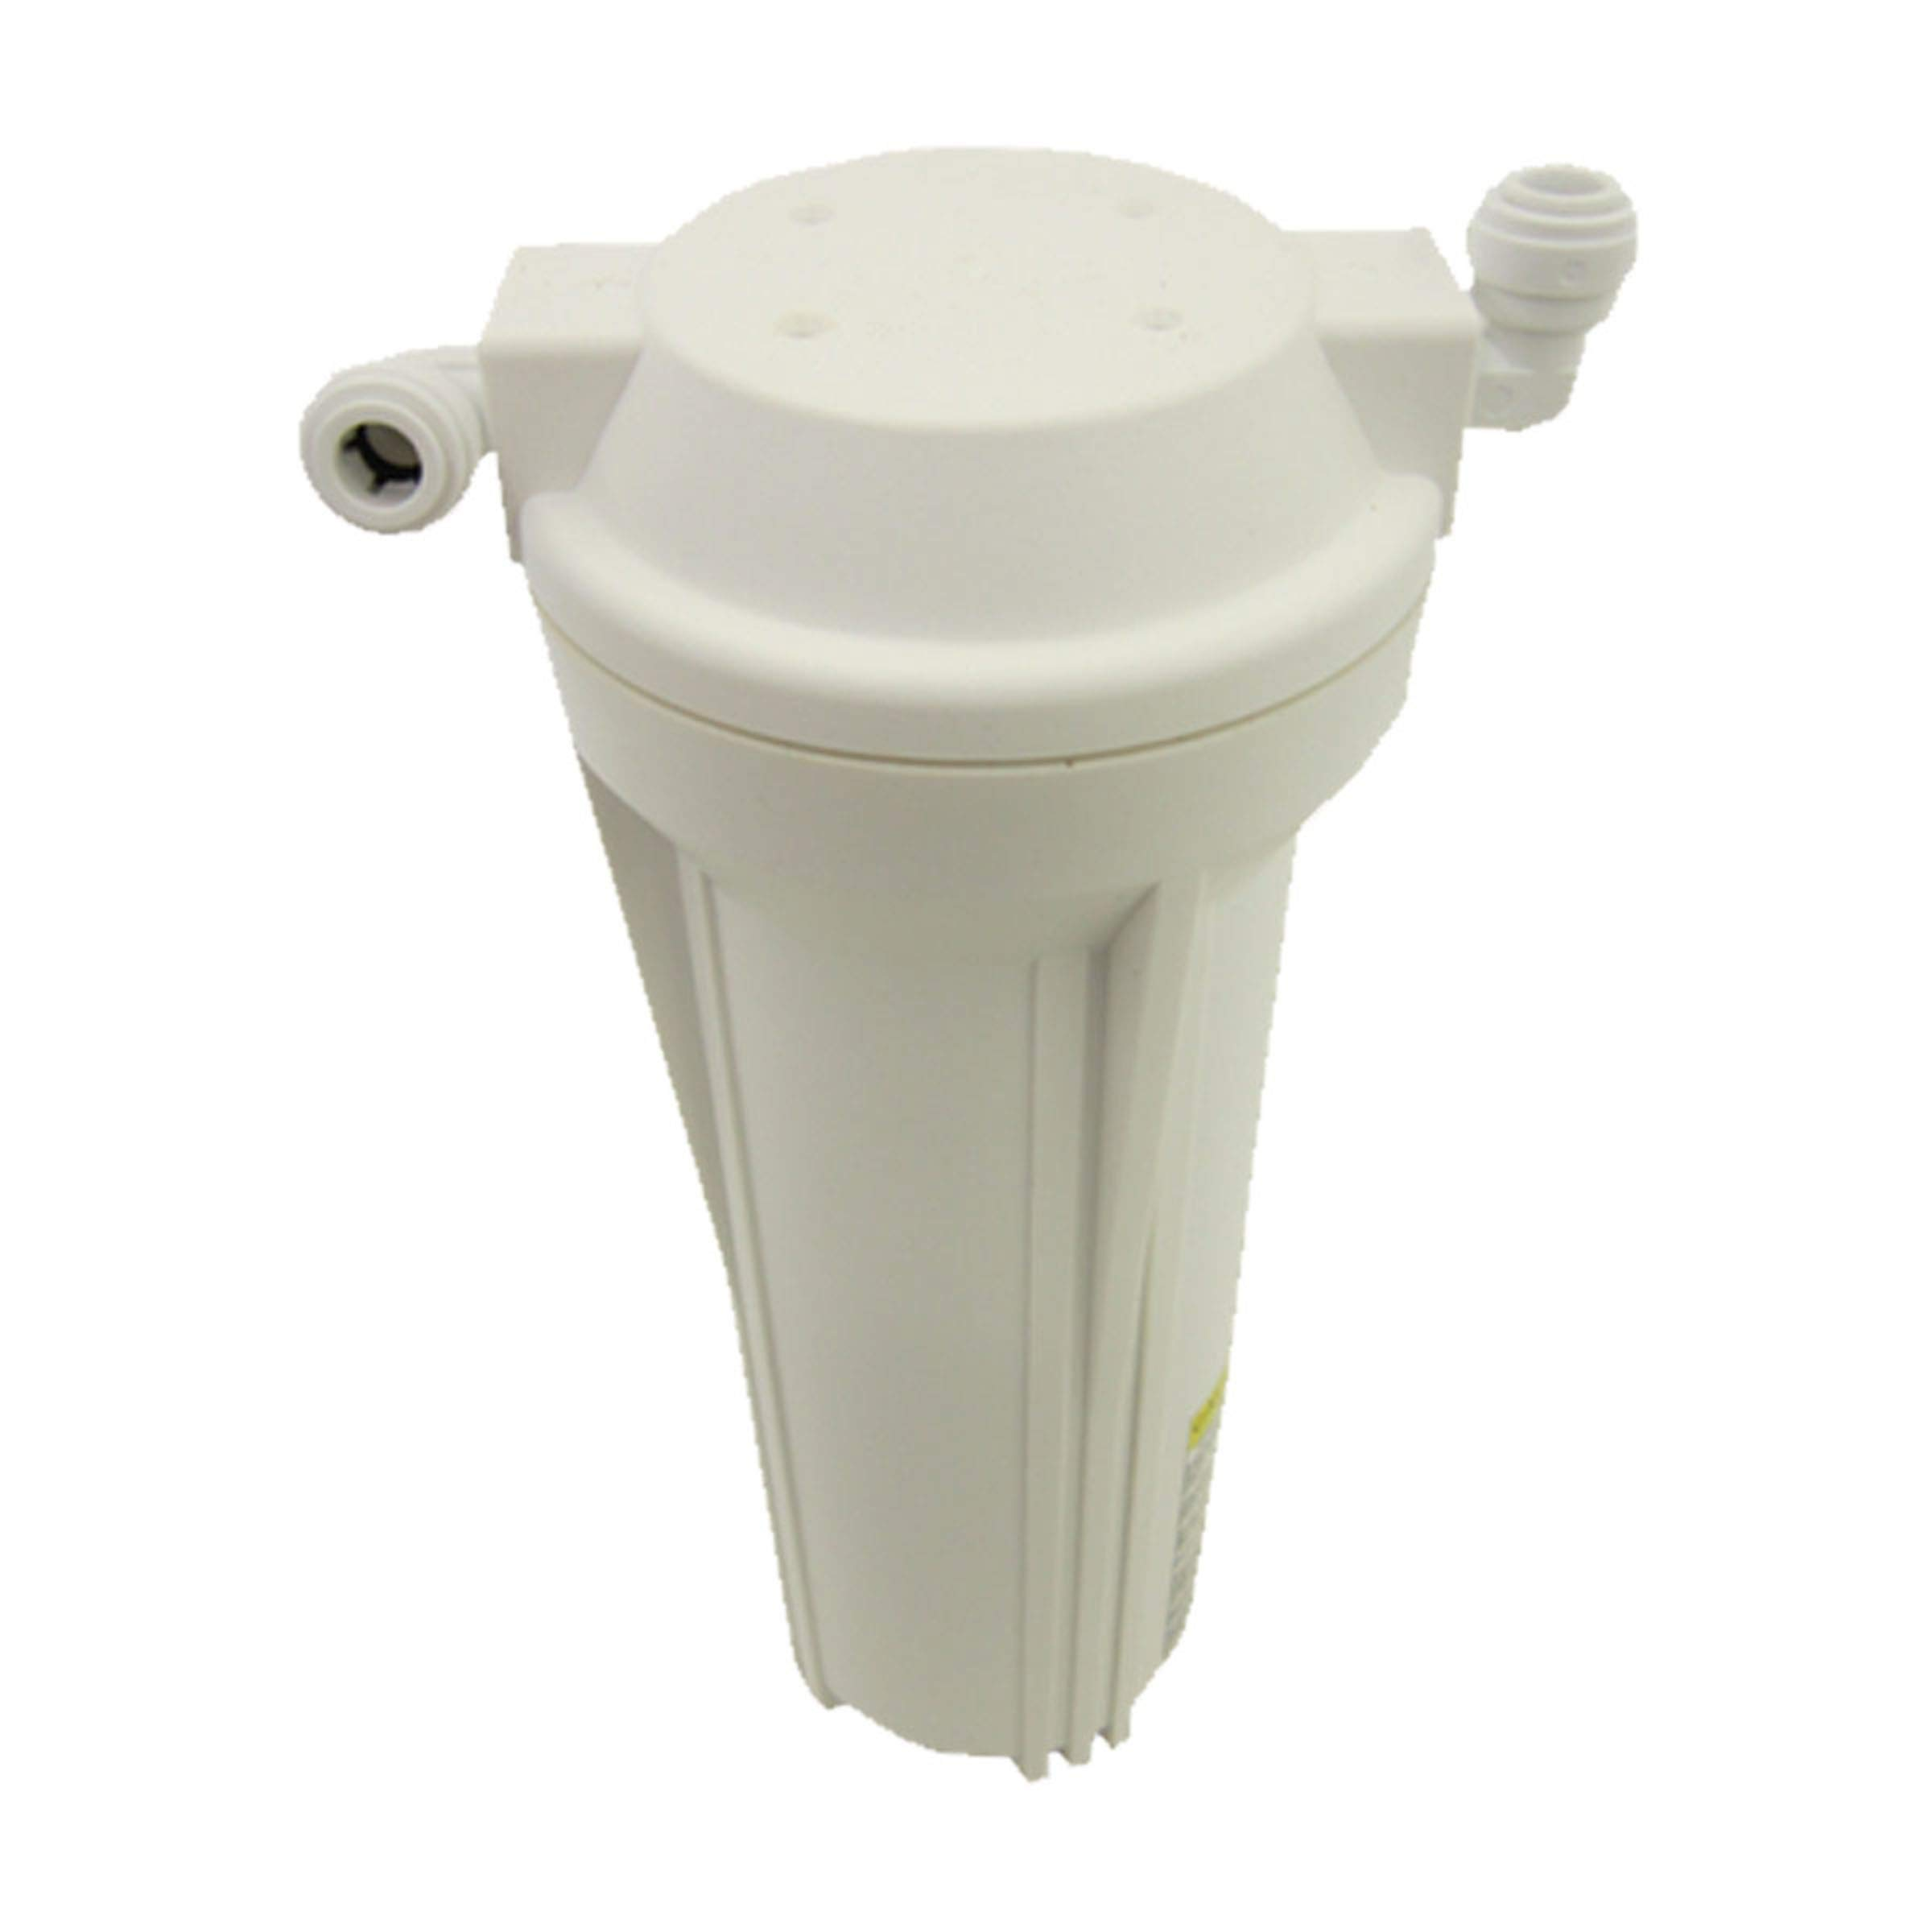 Scale Prevention Filter - (20 inch Big - 4GPM Flow) by mistcooling